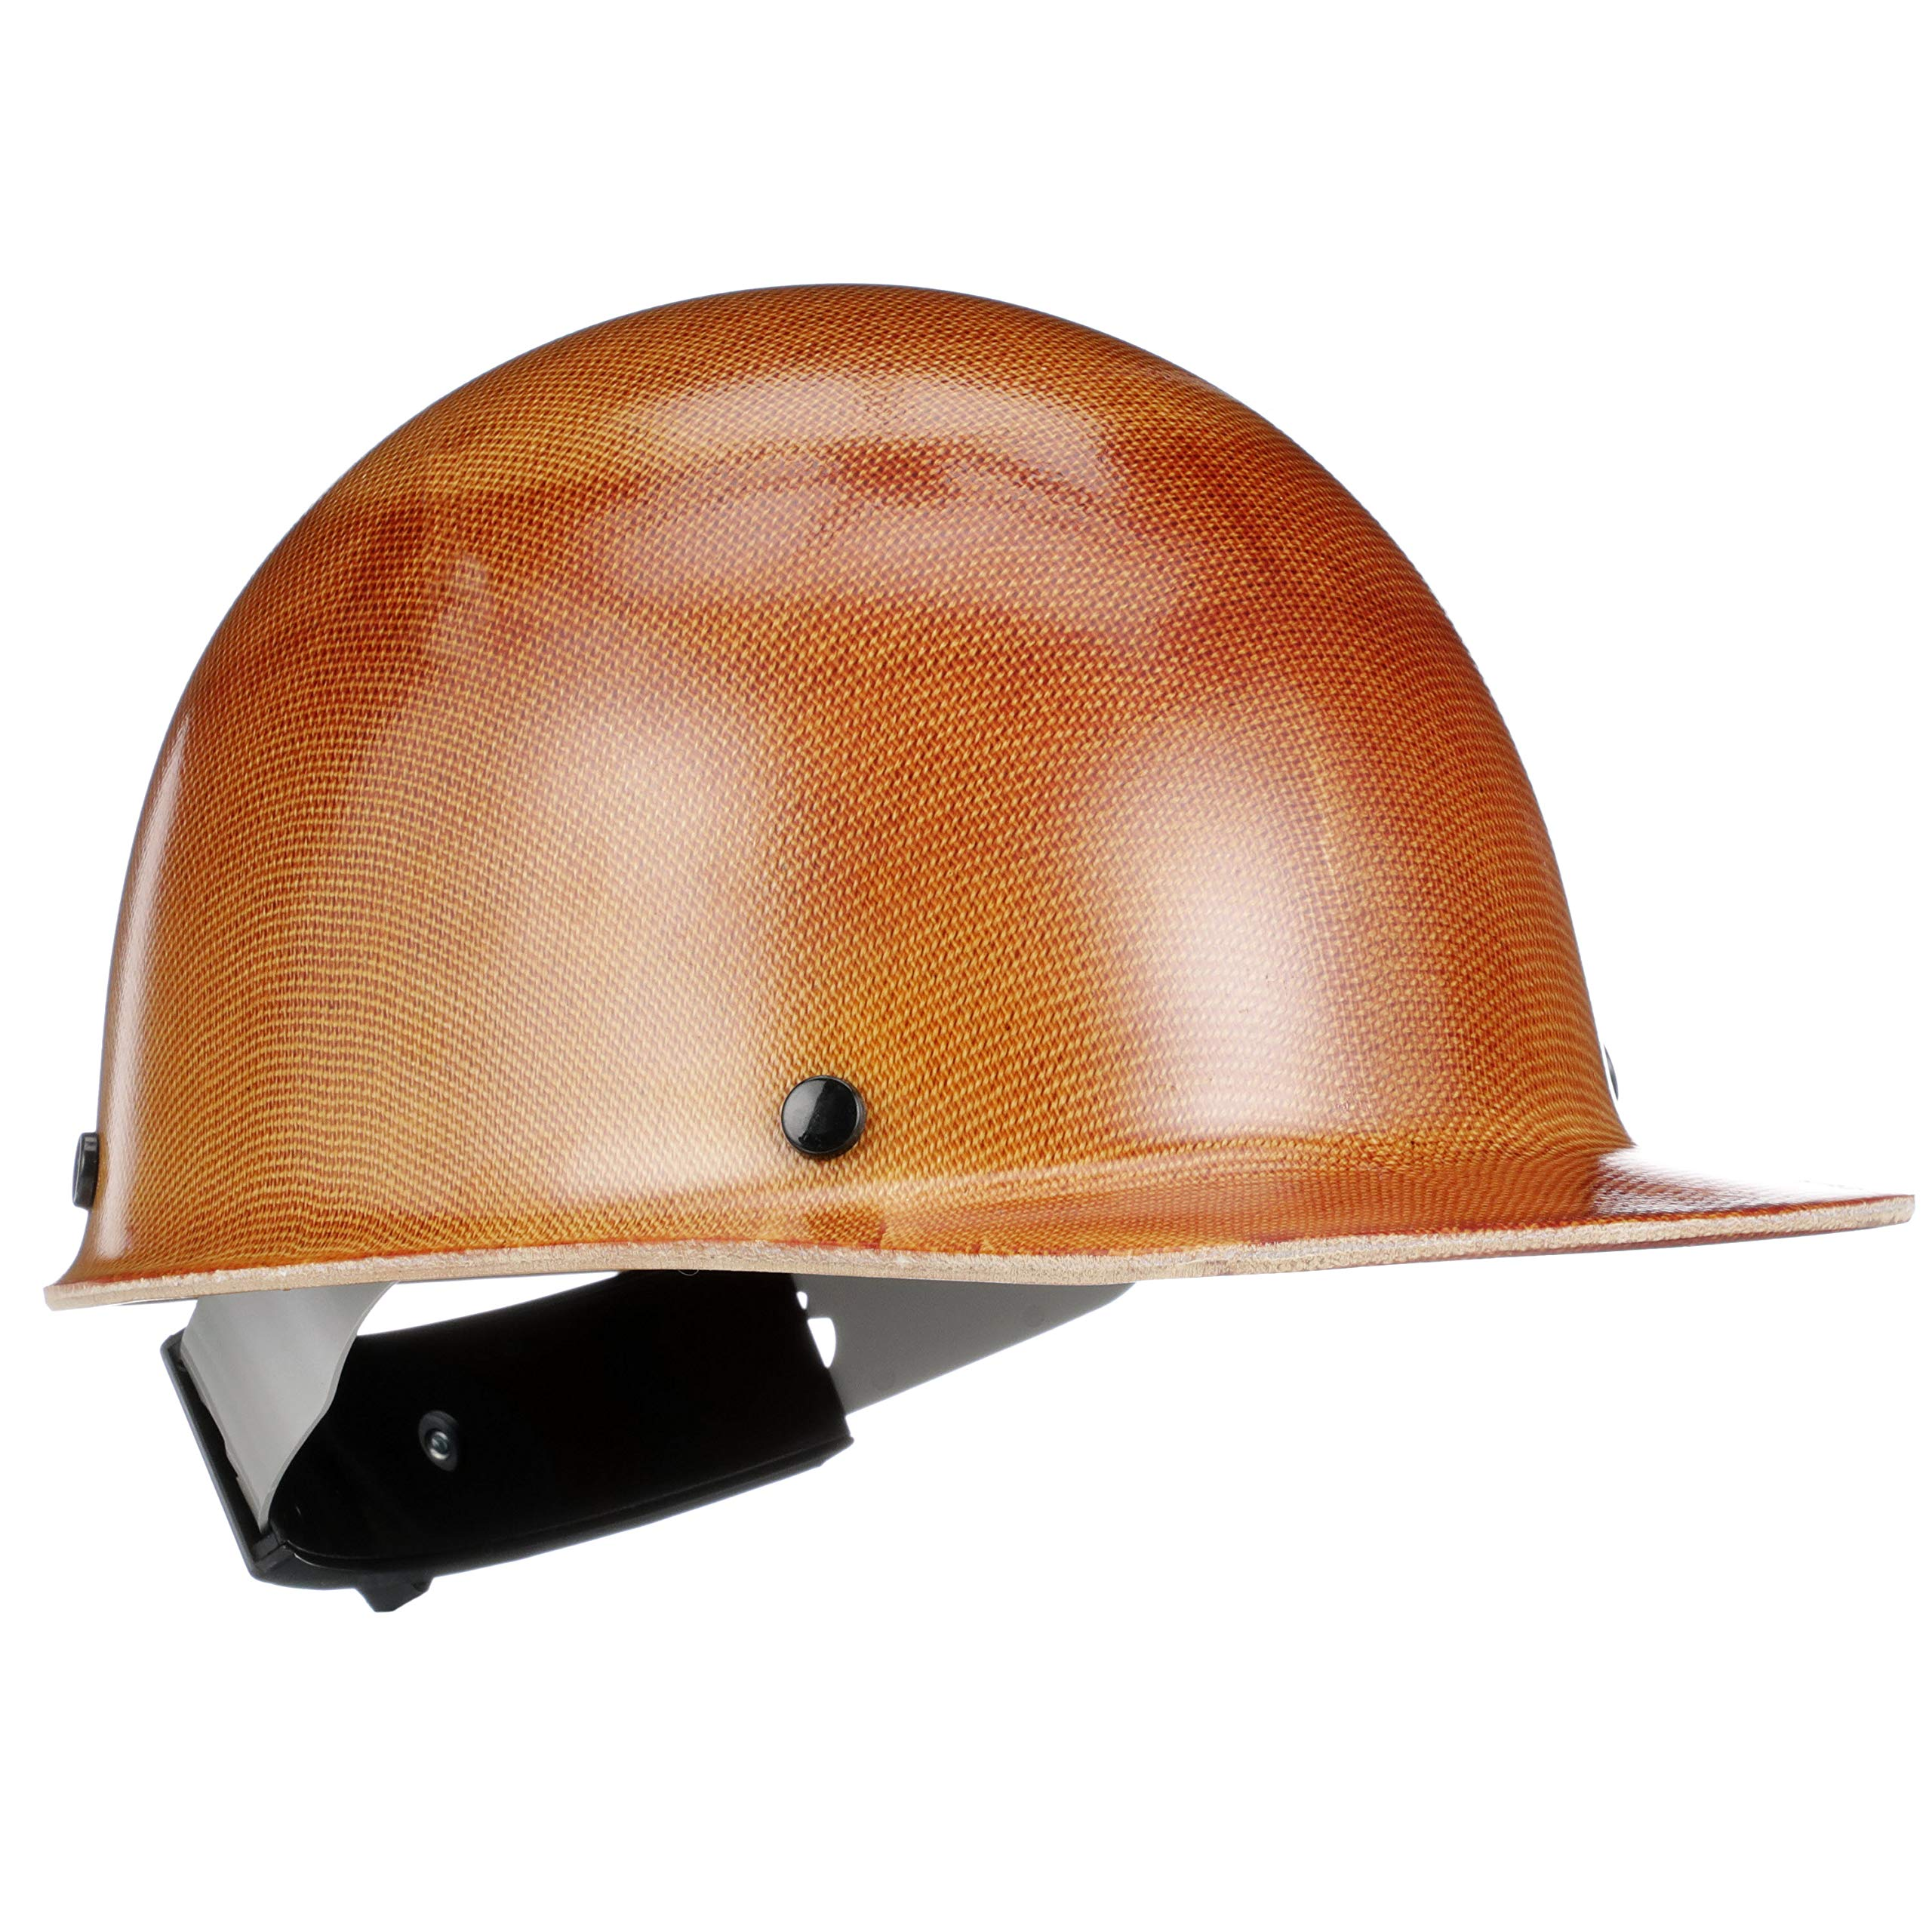 MSA 816651 Skullgard Protective Hard Hat Front Brim, Swing-Ratchet Suspension, Standard Size, Natural Tan by MSA (Image #1)